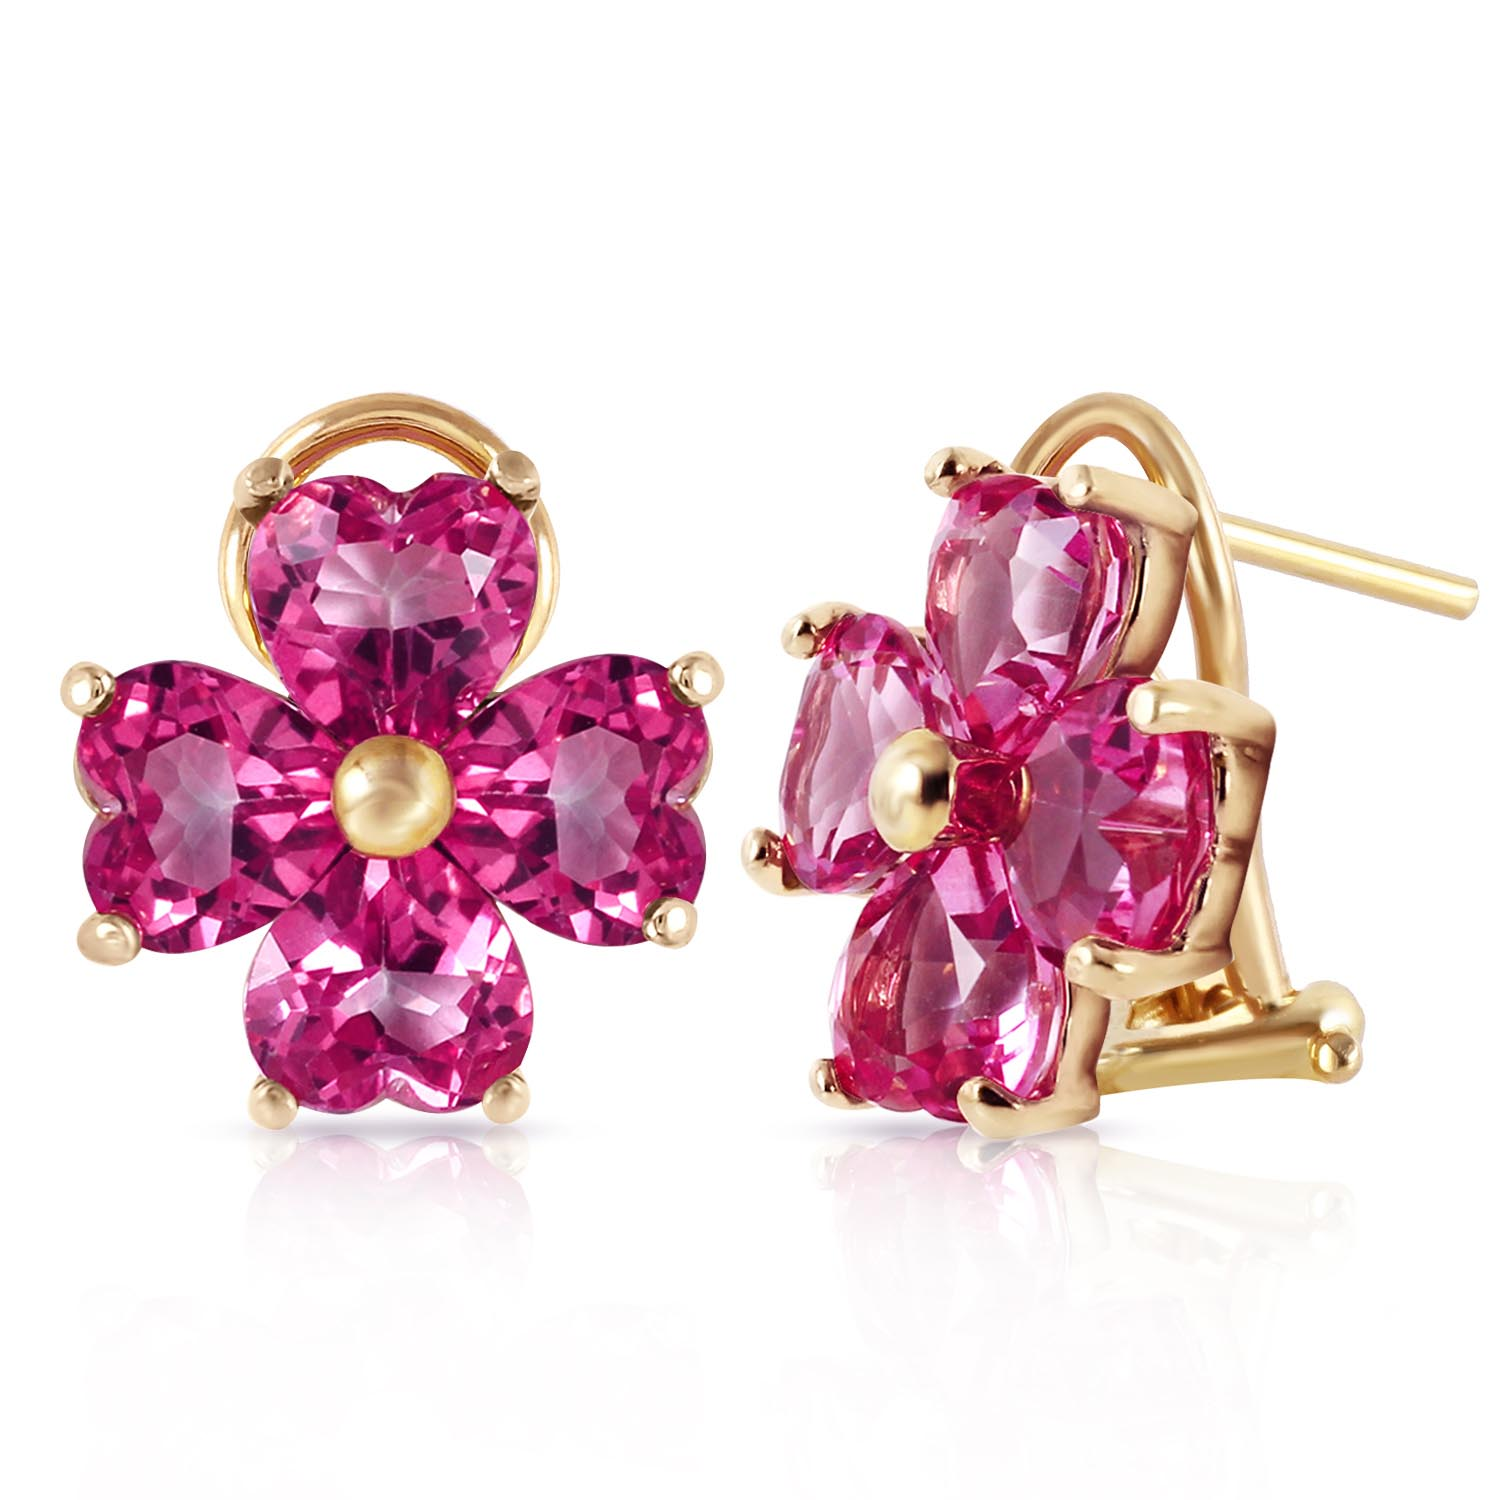 Pink Topaz Flower Stud Earrings 7.6 ctw in 9ct Gold